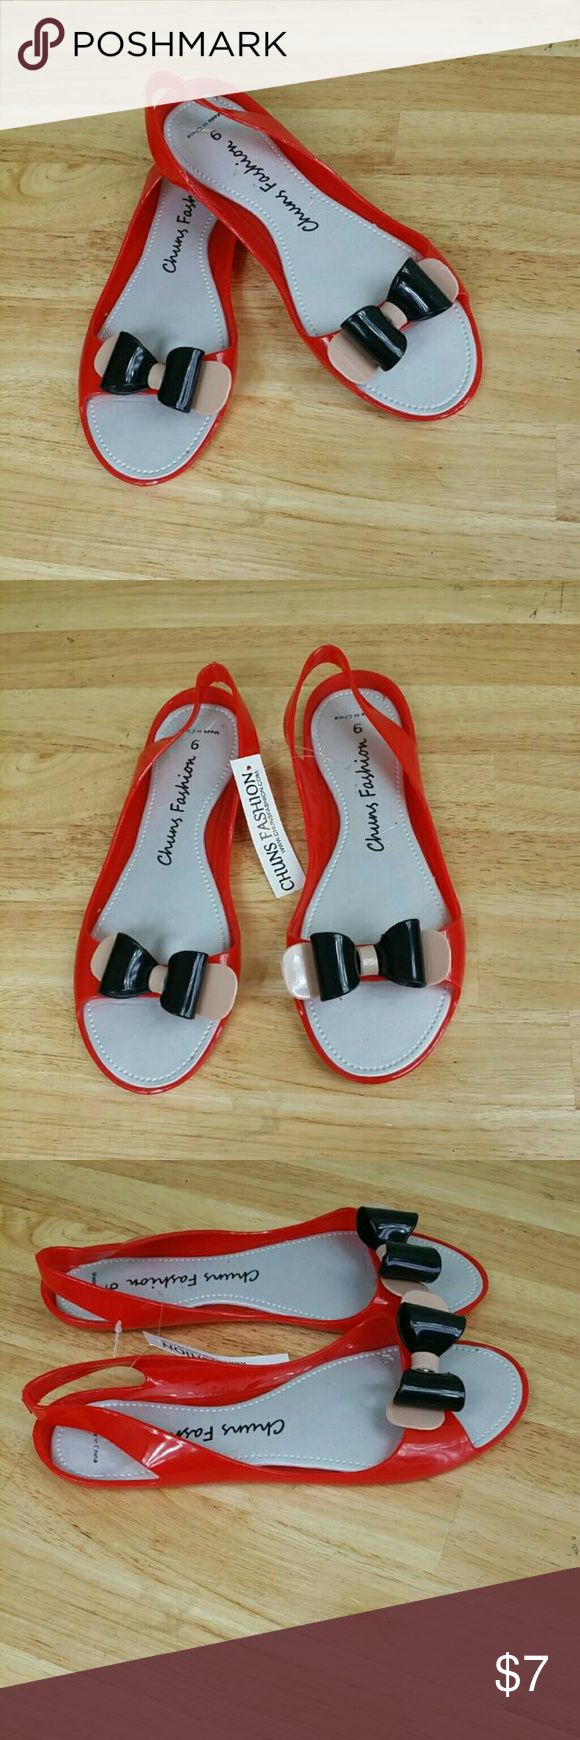 Women's jelly sandals size 10 - Chuns Fashion Women S Jelly Bow Tie Sandals Chuns Fashion Women S Jelly Sandals Summer Collection